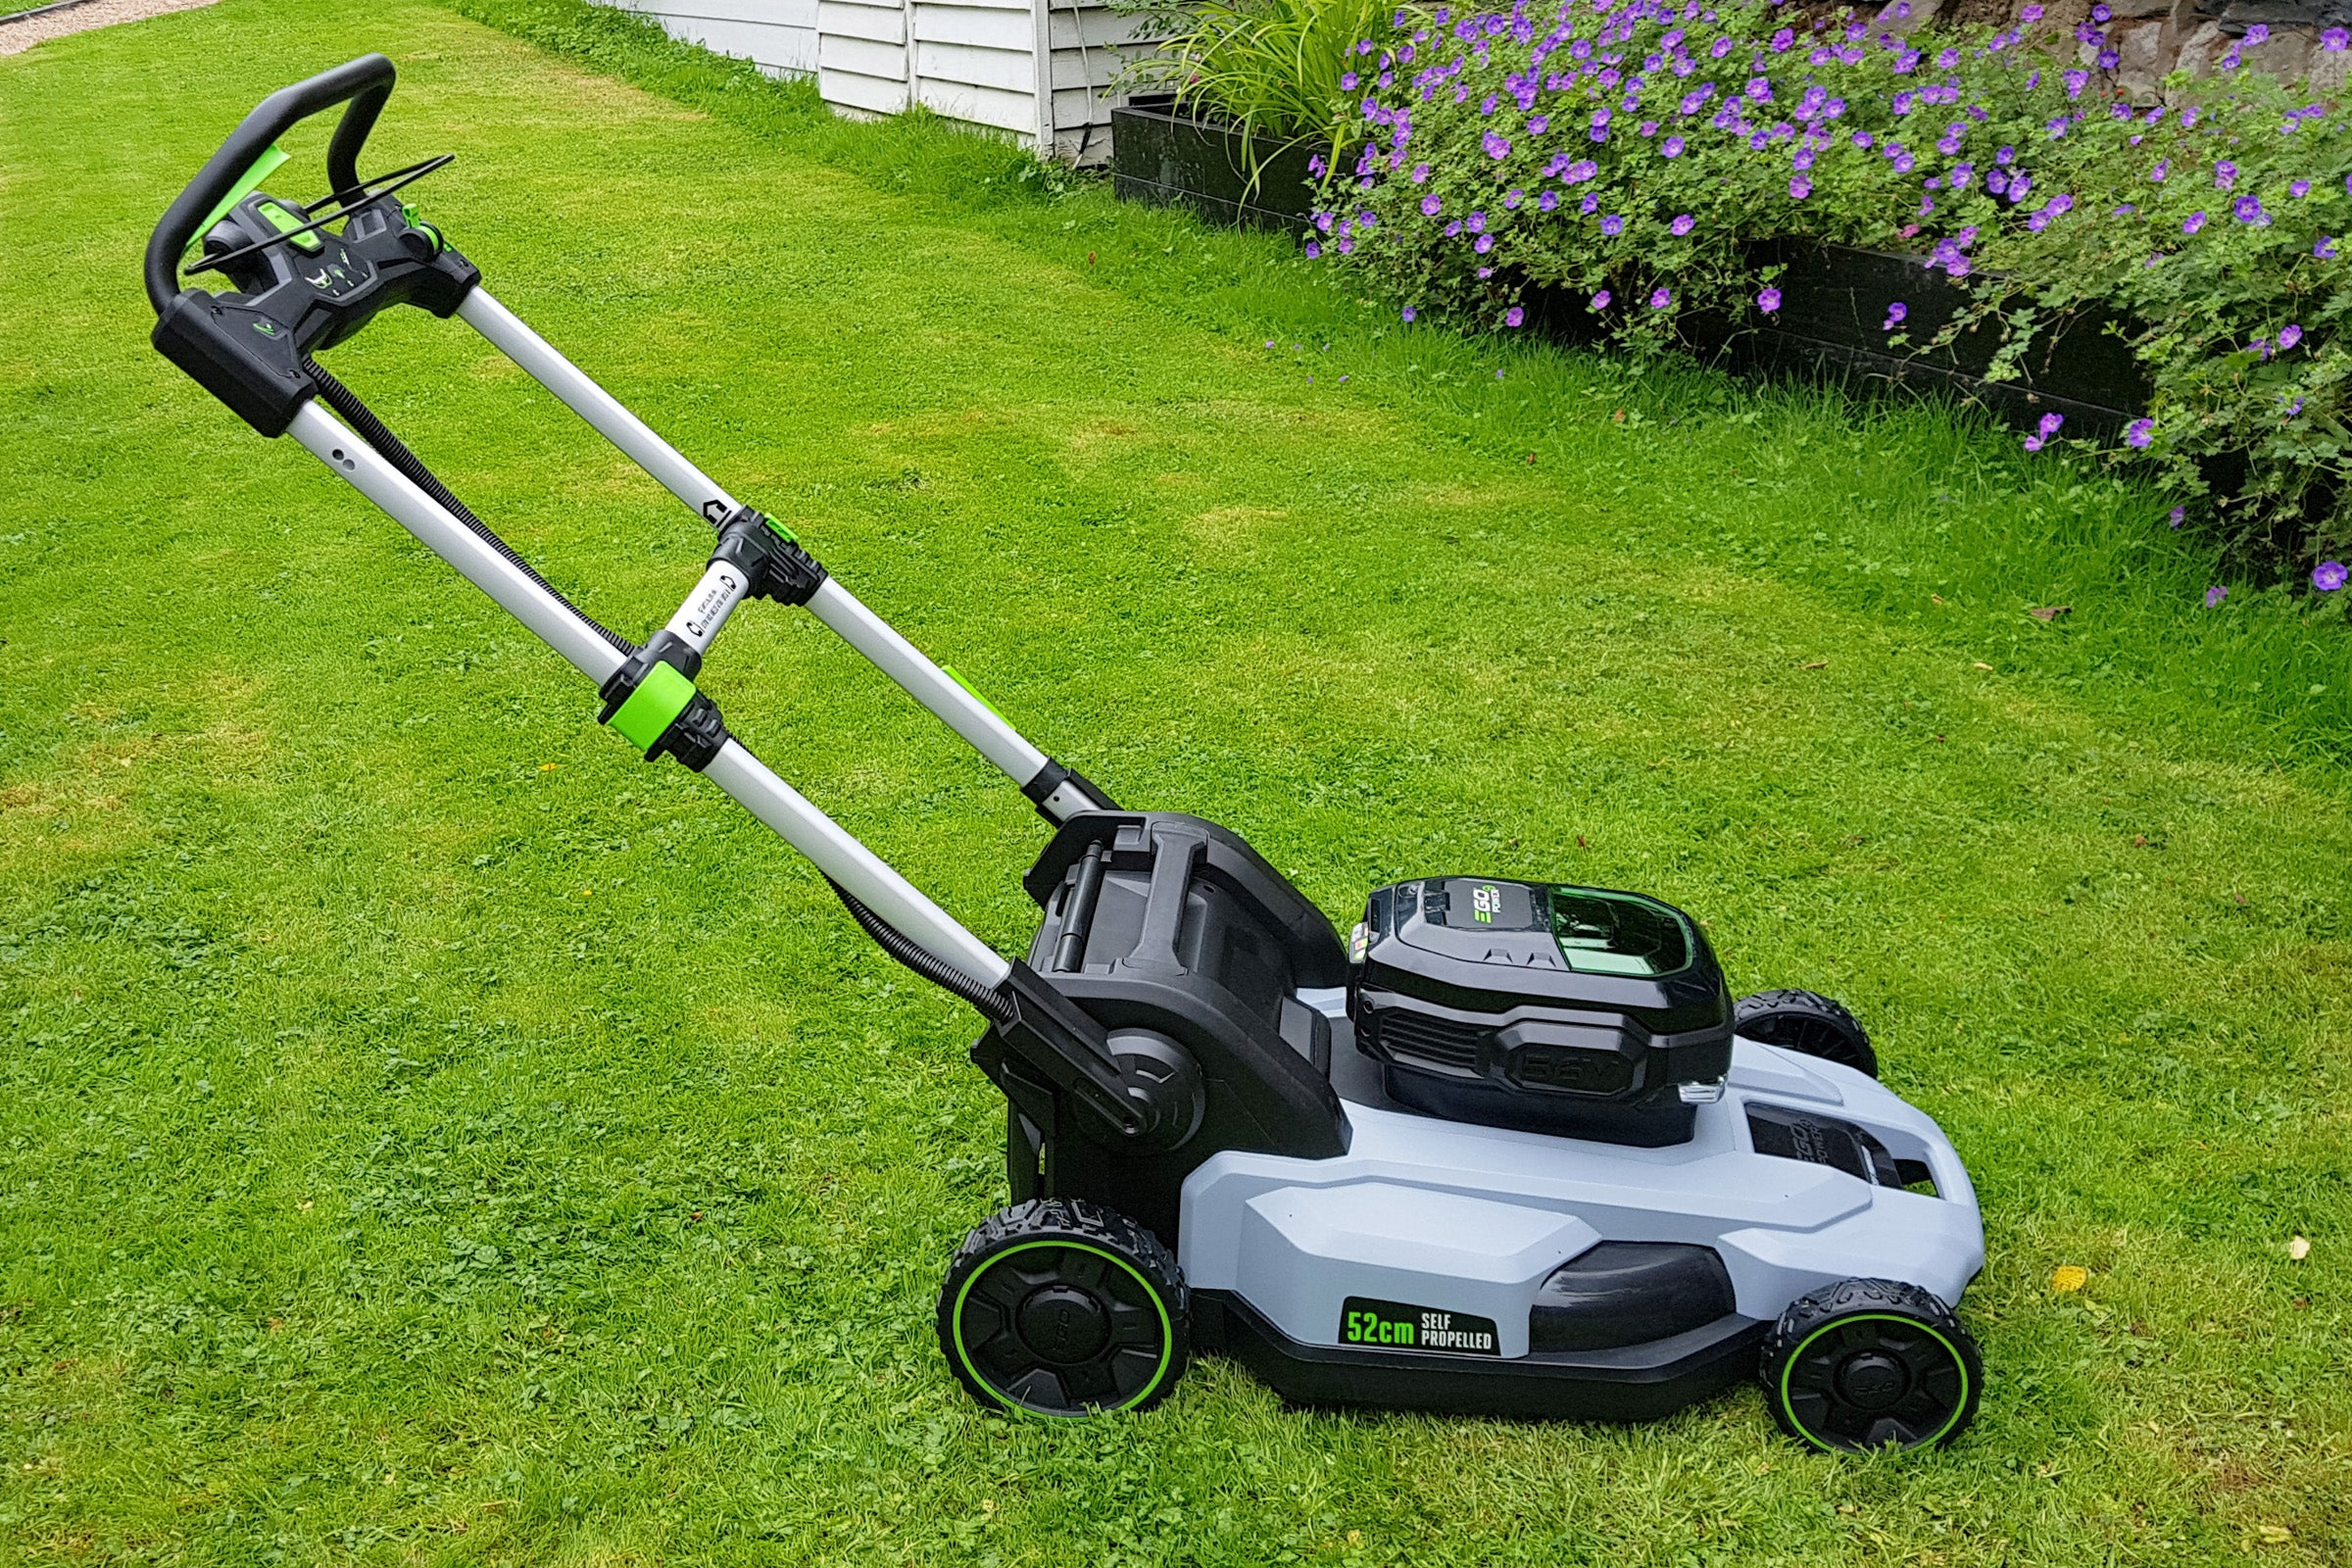 Ego Lm2122e Sp Cordless Lawnmower Review Trusted Reviews